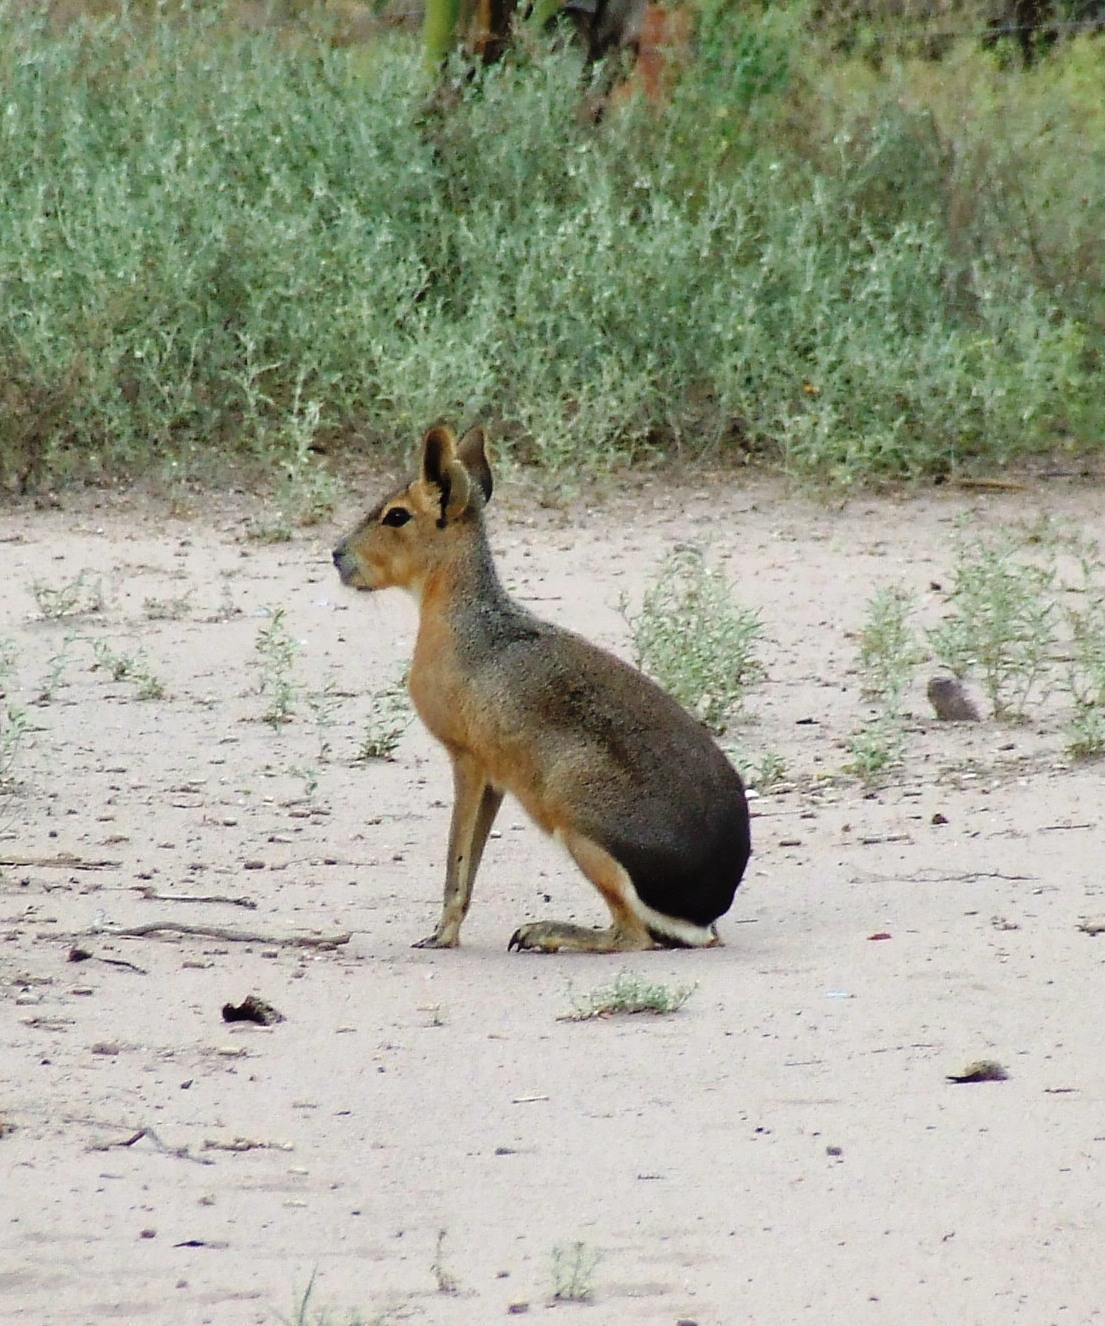 Image of Patagonian Cavy